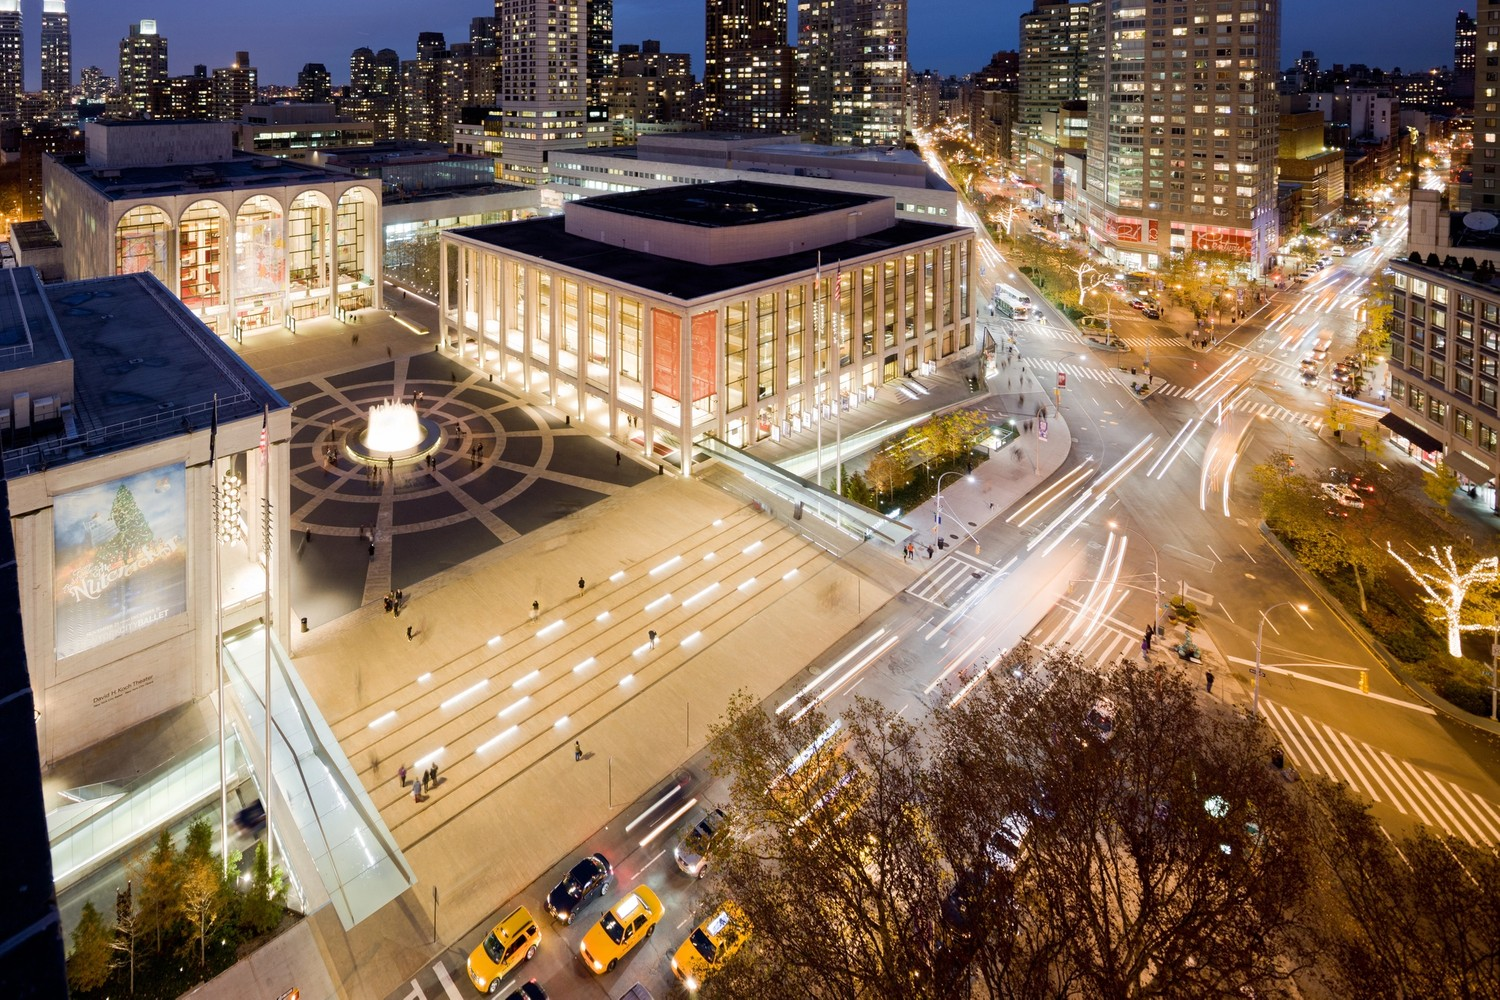 Here You Can Find 10 Outstanding Architecture Projects of Diller Scofidio + Renfro To Look For This Year! architecture projects Here You Can Find 10 Outstanding Architecture Projects of Diller Scofidio + Renfro To Look For This Year! 10 2